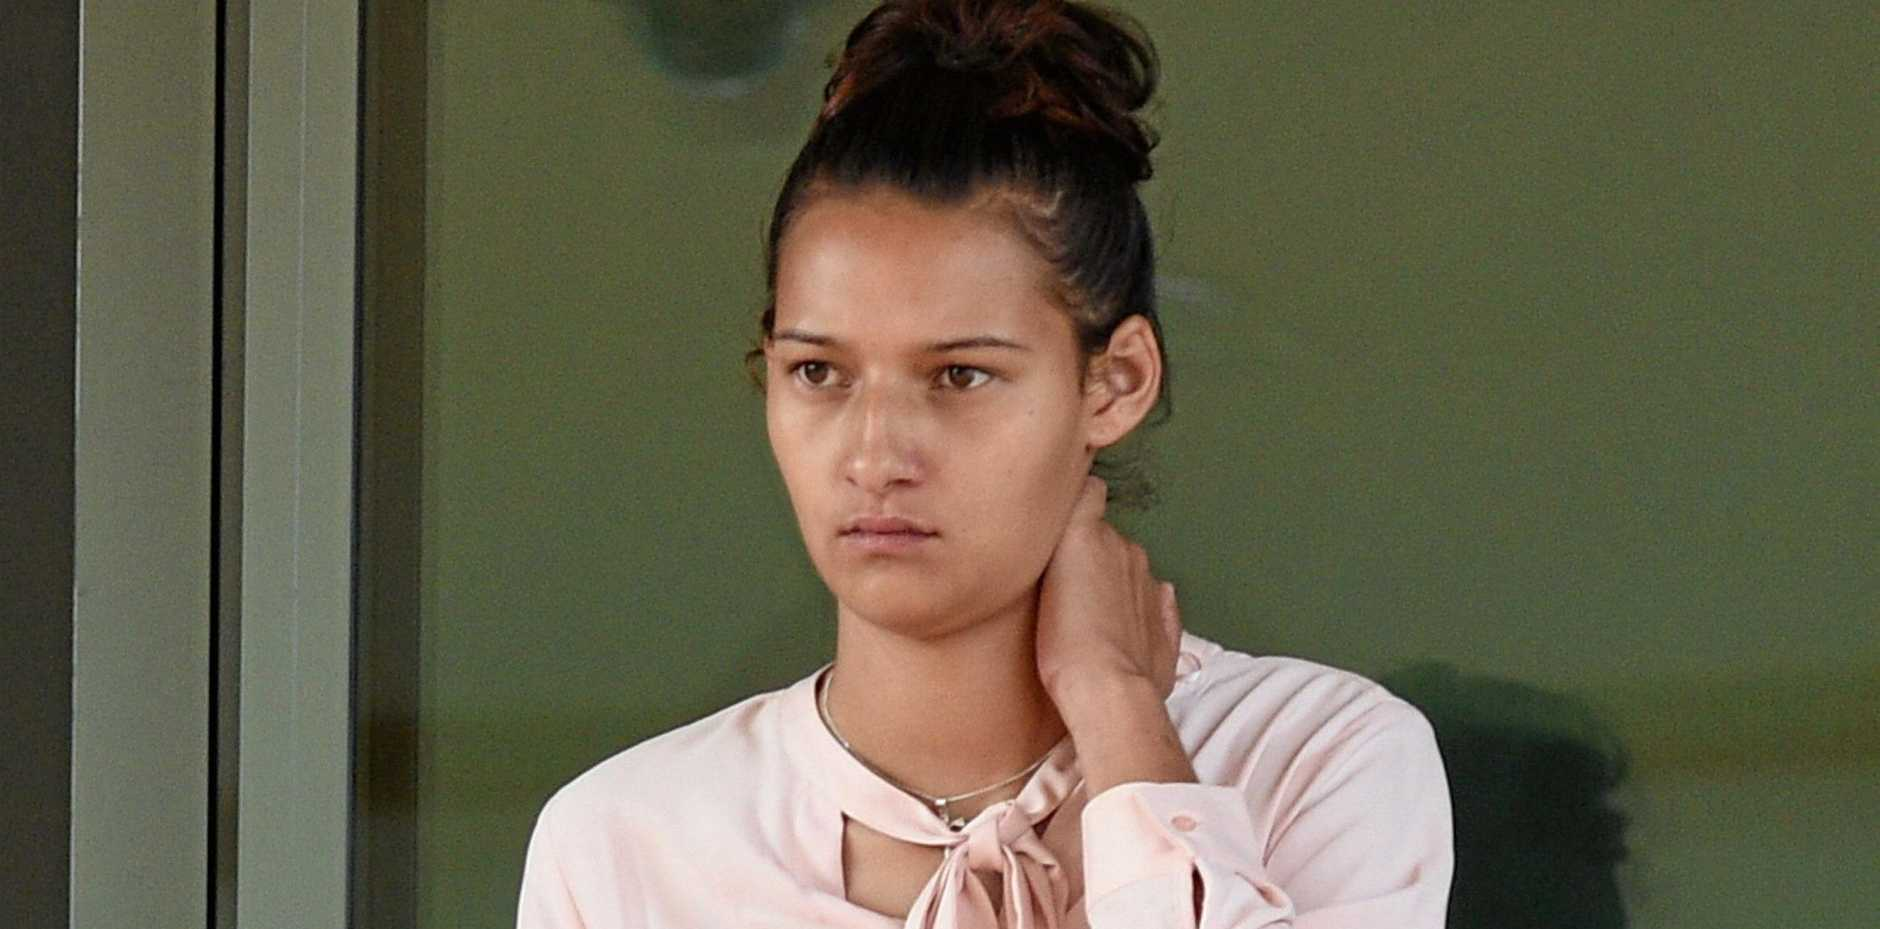 BAD CHOICES: Shaye Stephens leaves Hervey Bay District Court after sentencing.